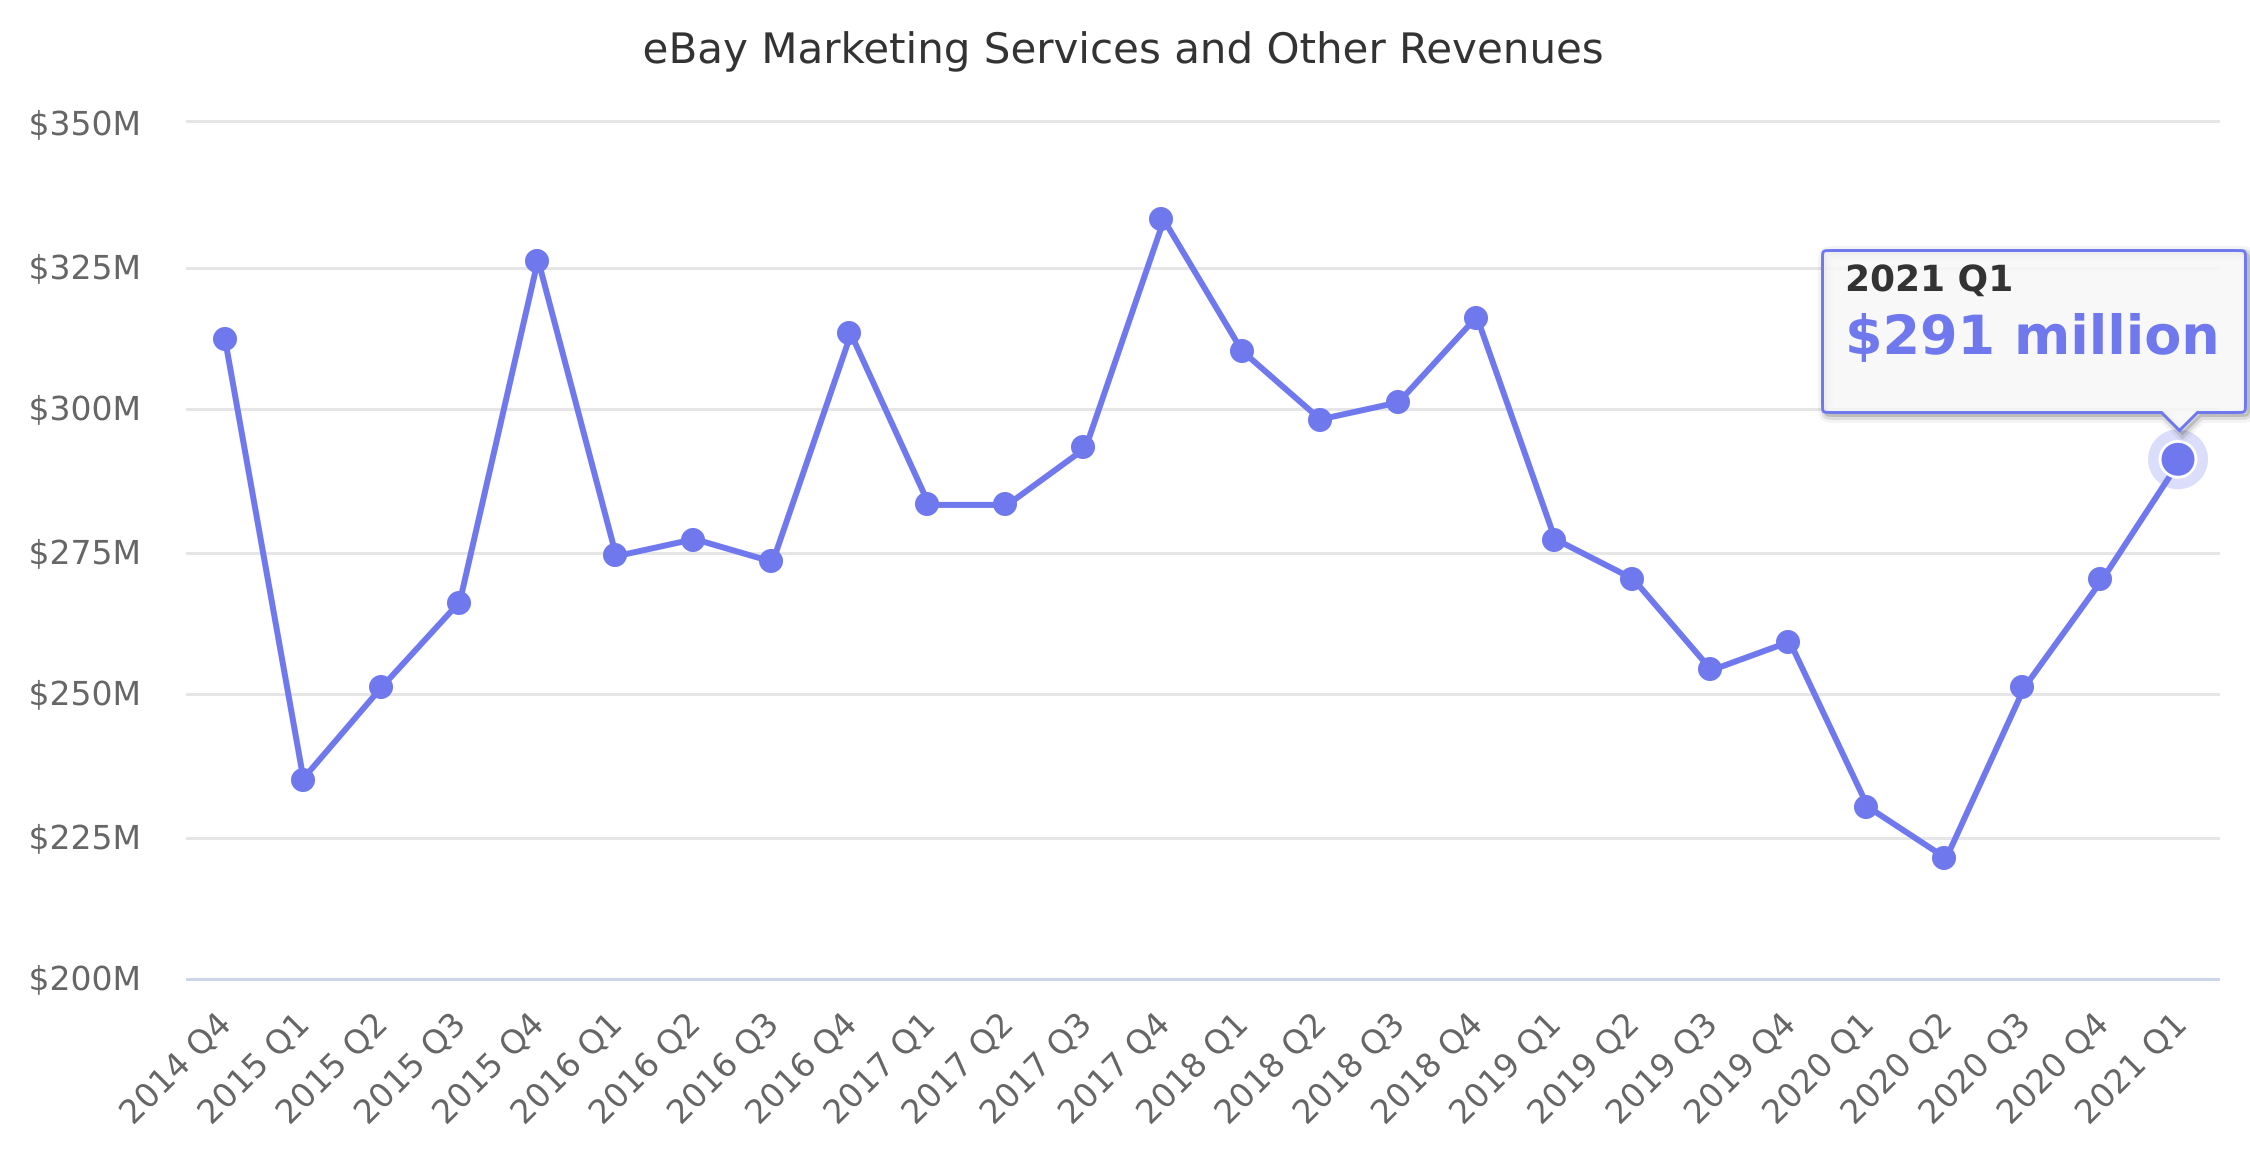 eBay Marketing Services and Other Revenues 2014-2018